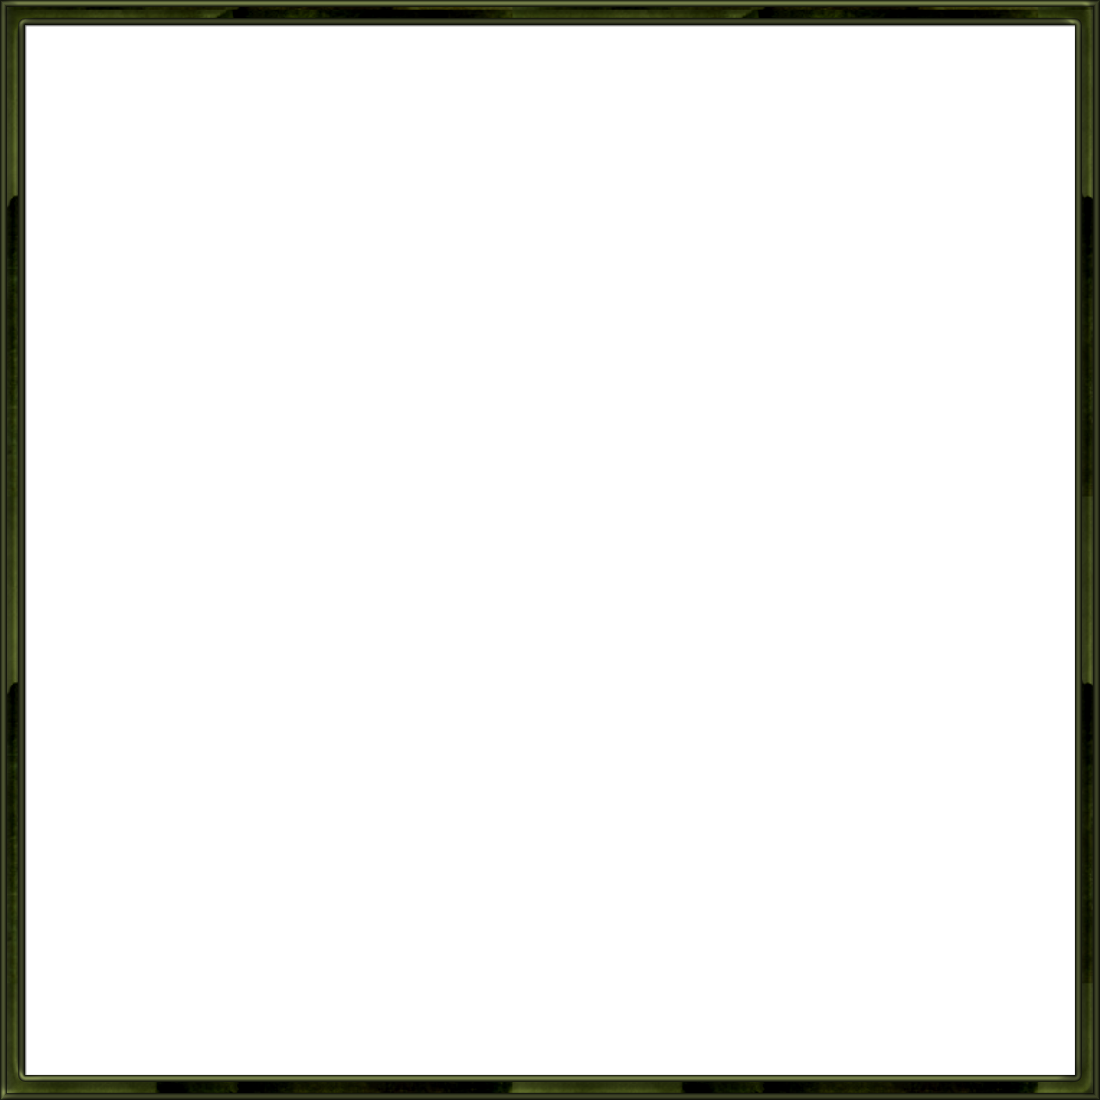 White square border png. Transparent pictures free icons